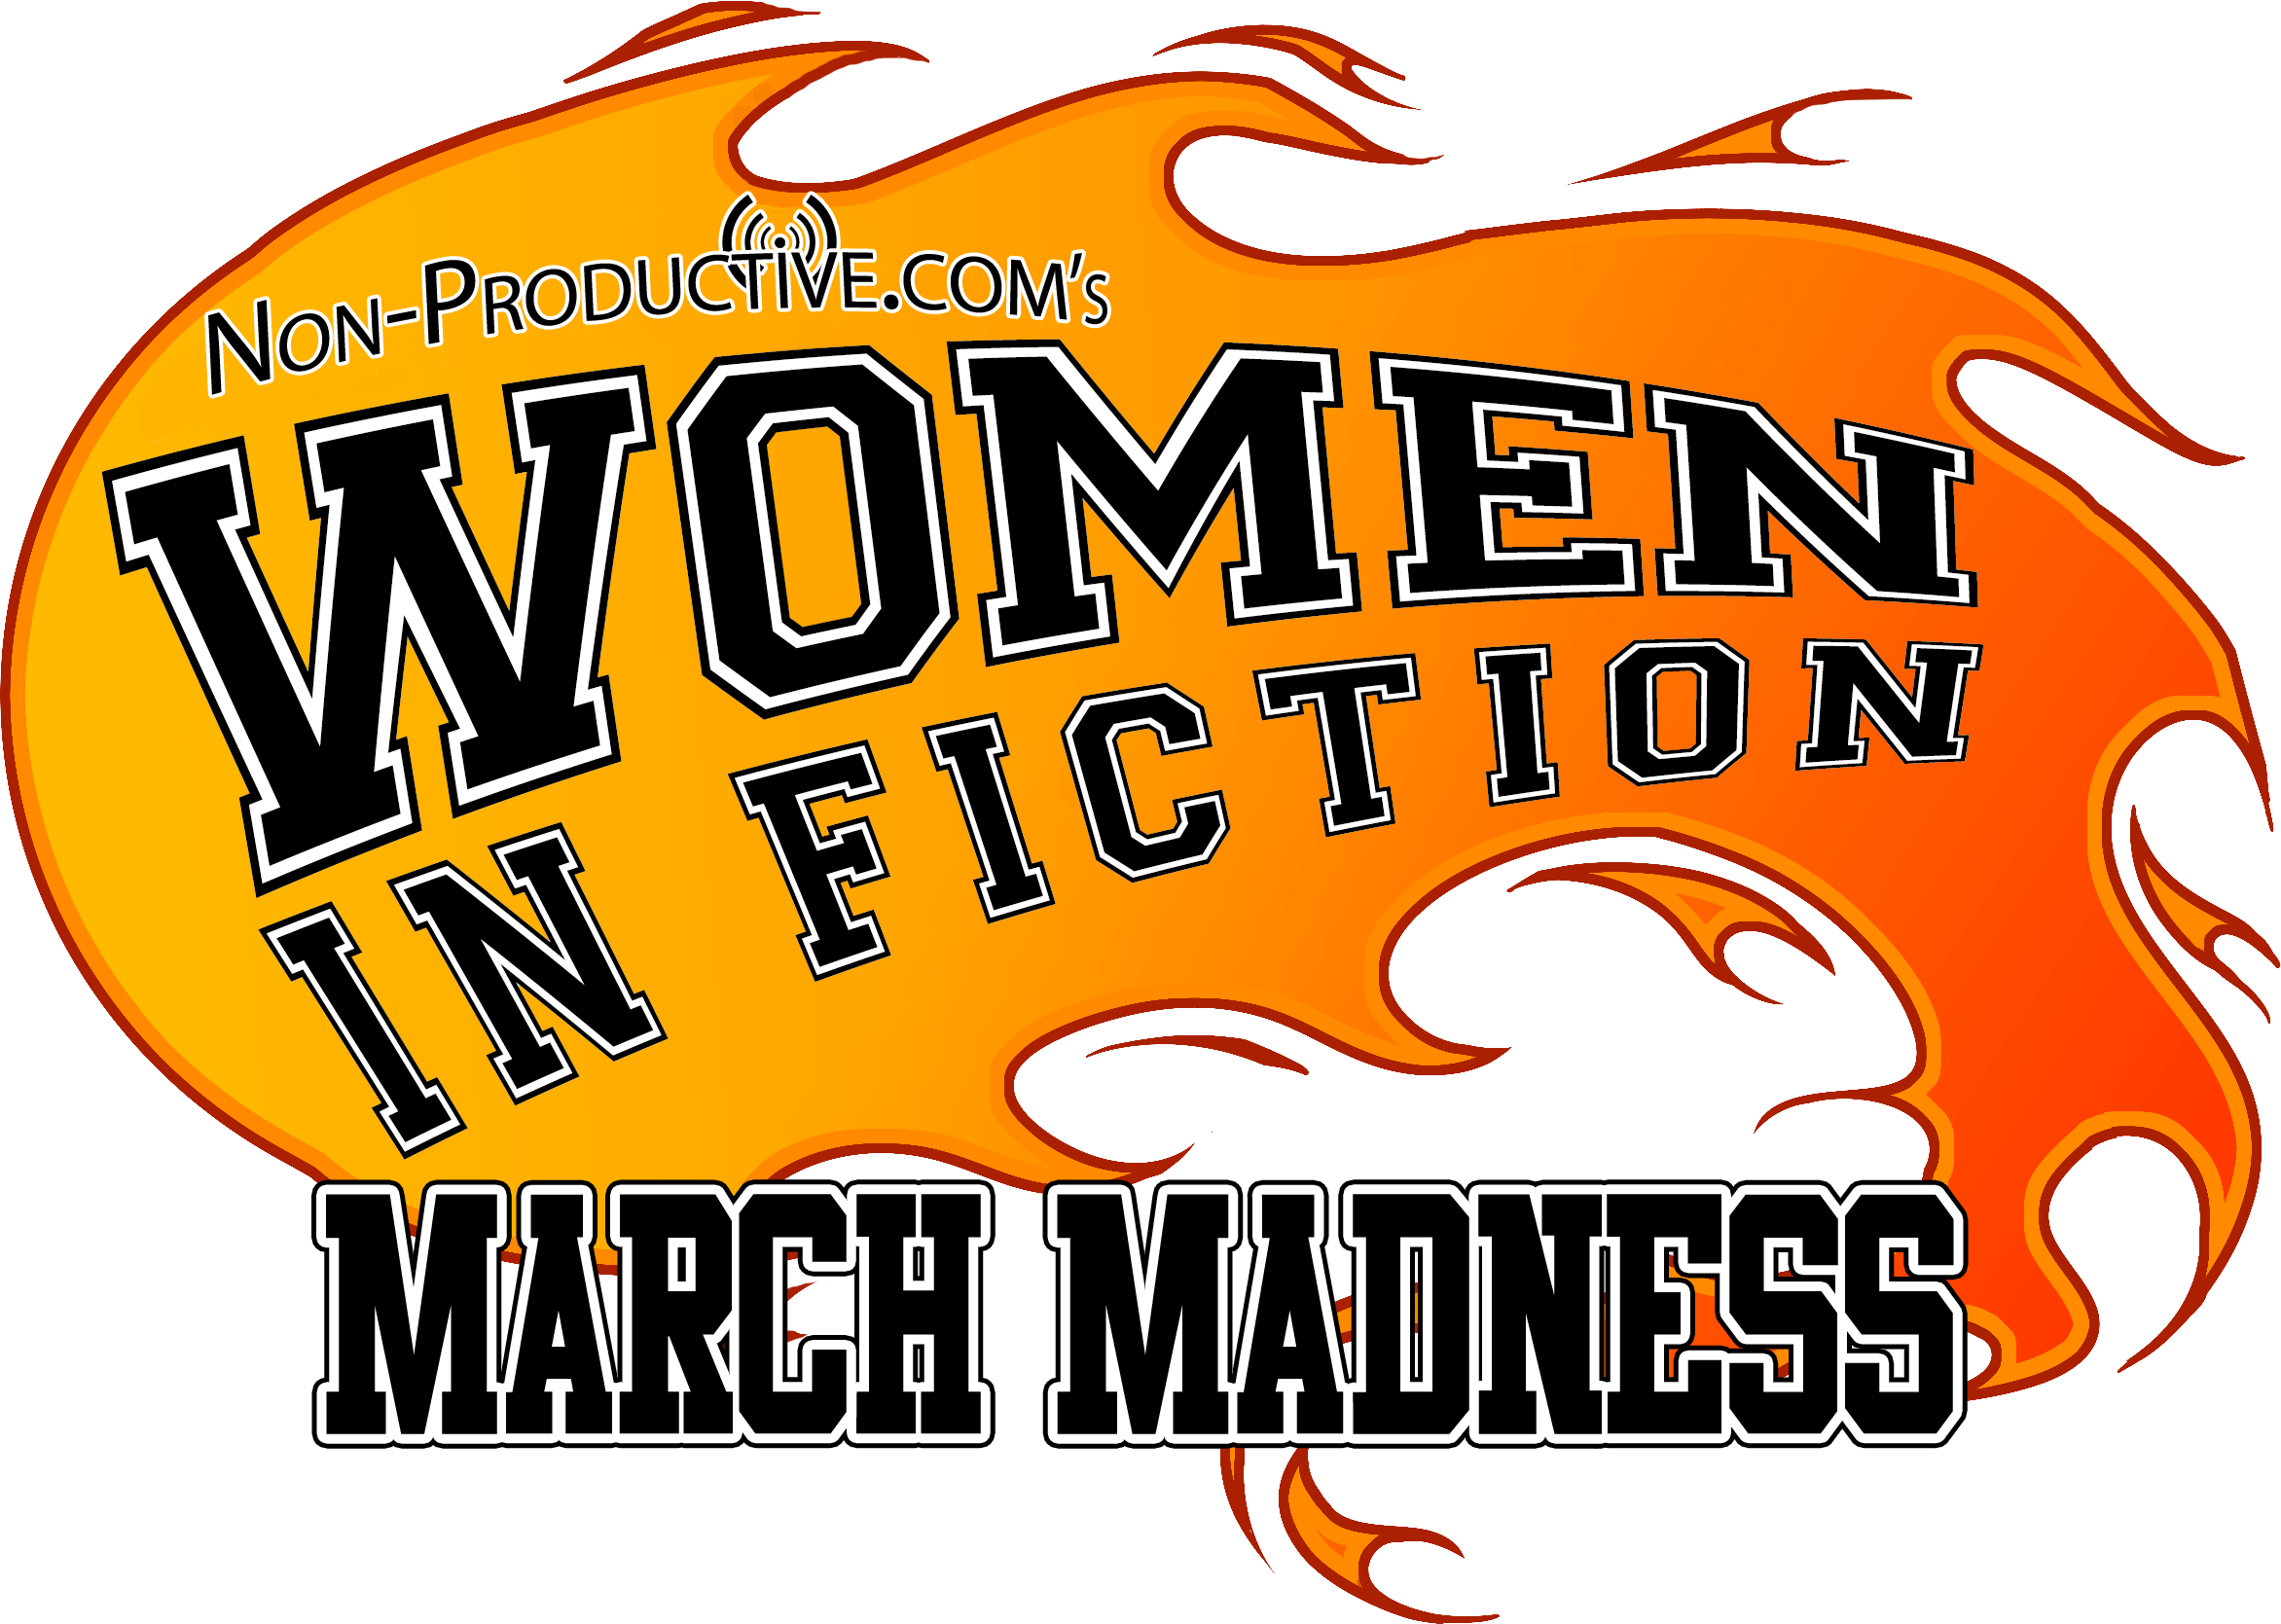 Cough clipart nonproductive. The womeninfiction marchmadness nominations